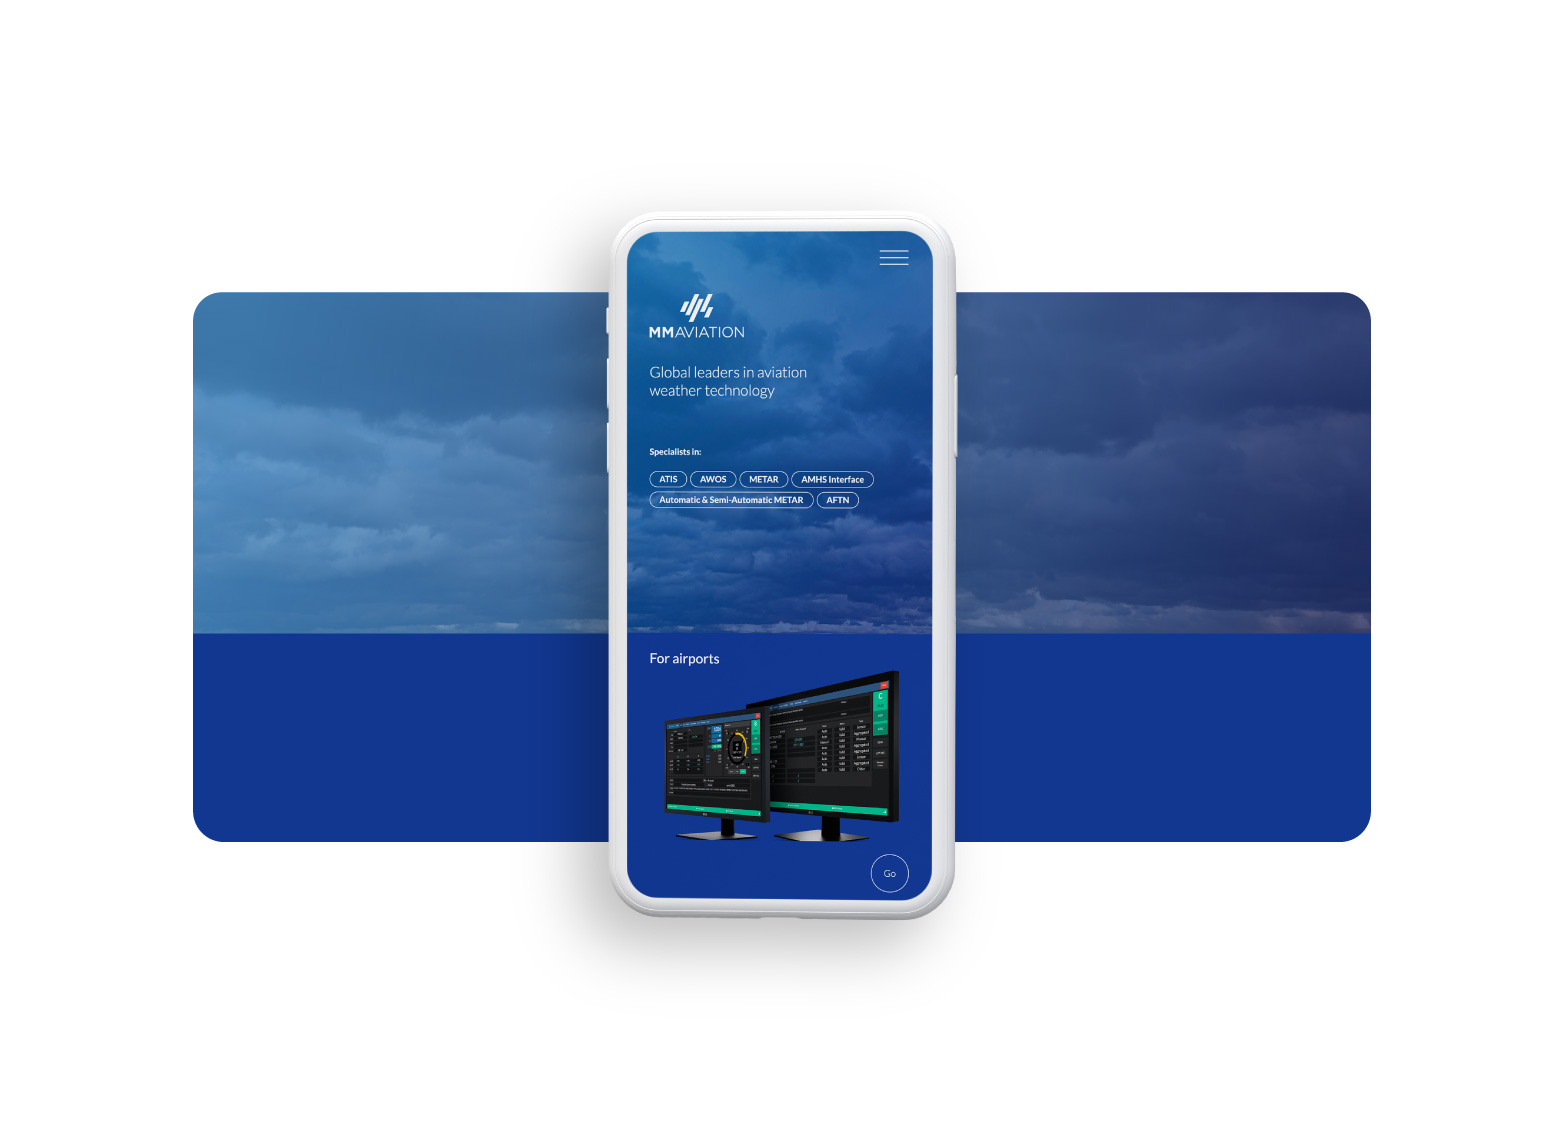 MM Aviation site on a mobile phone